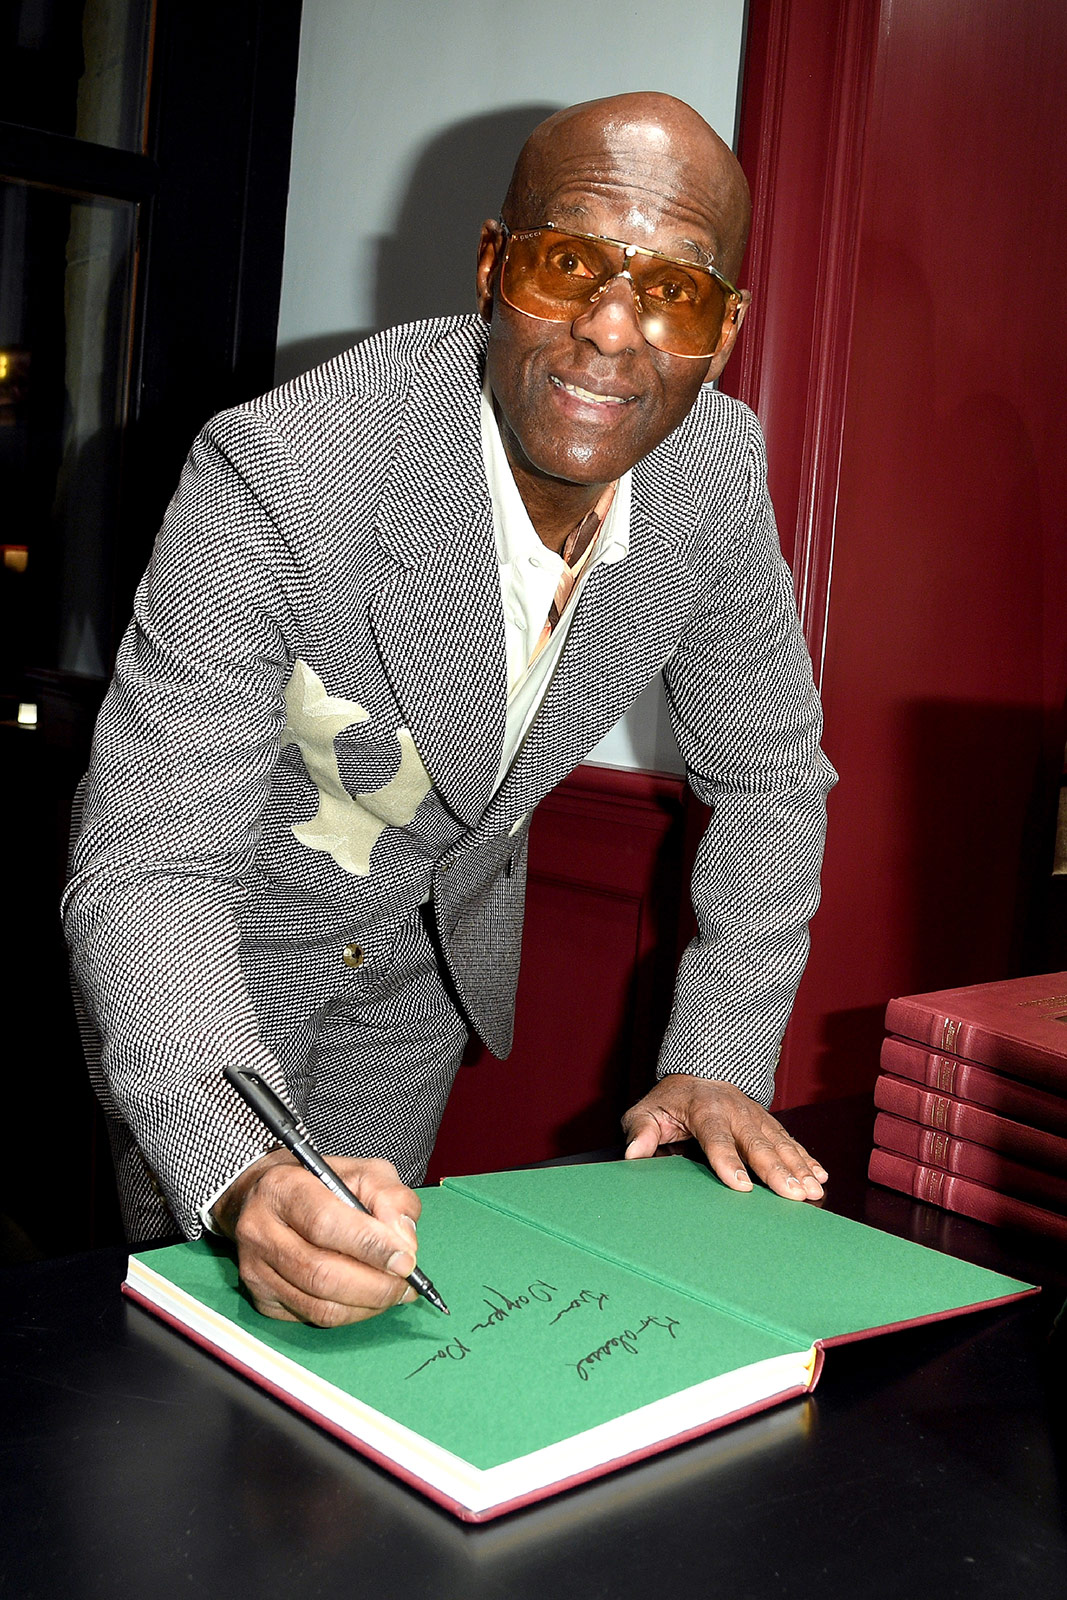 Dapper dan courtesy of getty images for gucci 2